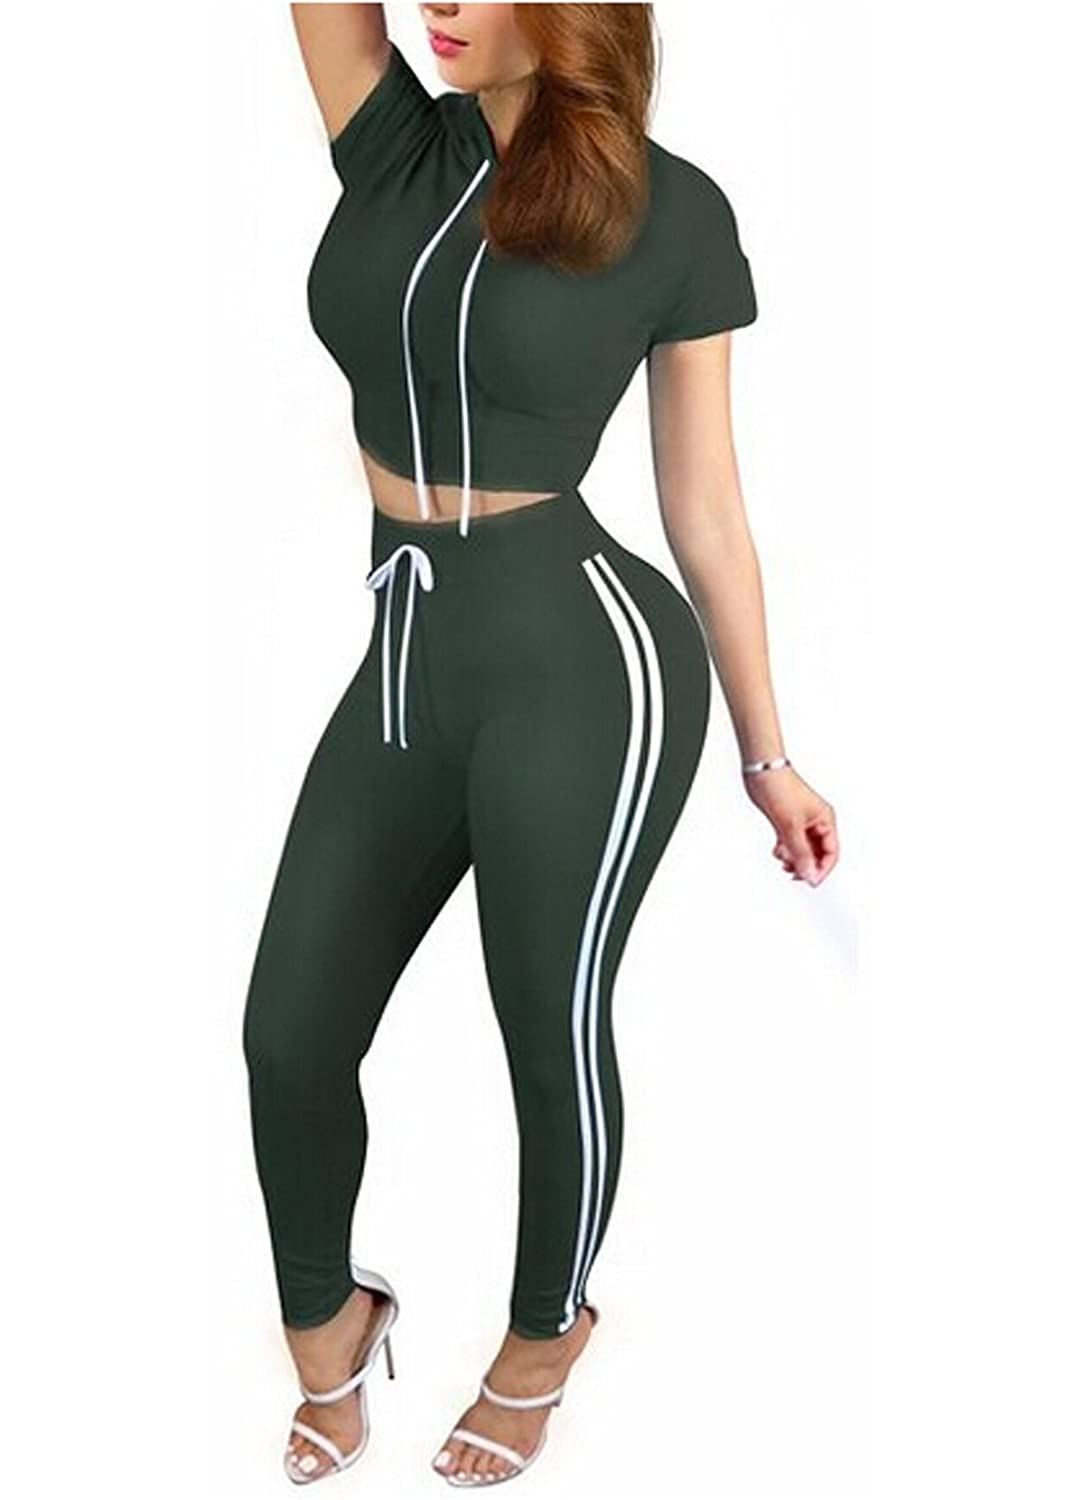 Women's Long Sleeve Hoody Crop Top and Ripped Pant Suit A04008